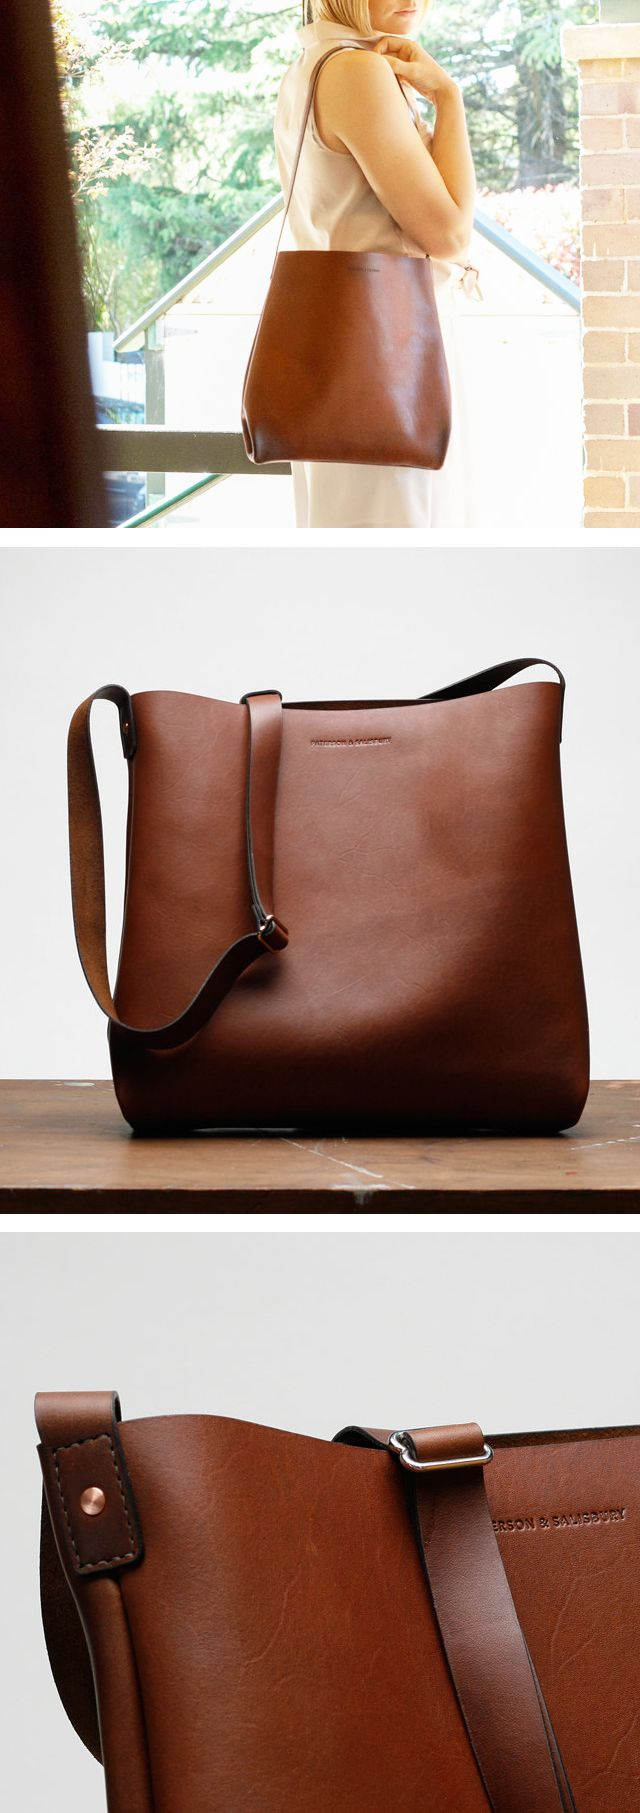 Australian Leather Tote Bag, Small, Shoulder Bag, Crossbody, Cross Body, Satchel, Brown, Laptop, MacBook, Handbag, Messenger, Folio, Ipad, Christmas gift for her